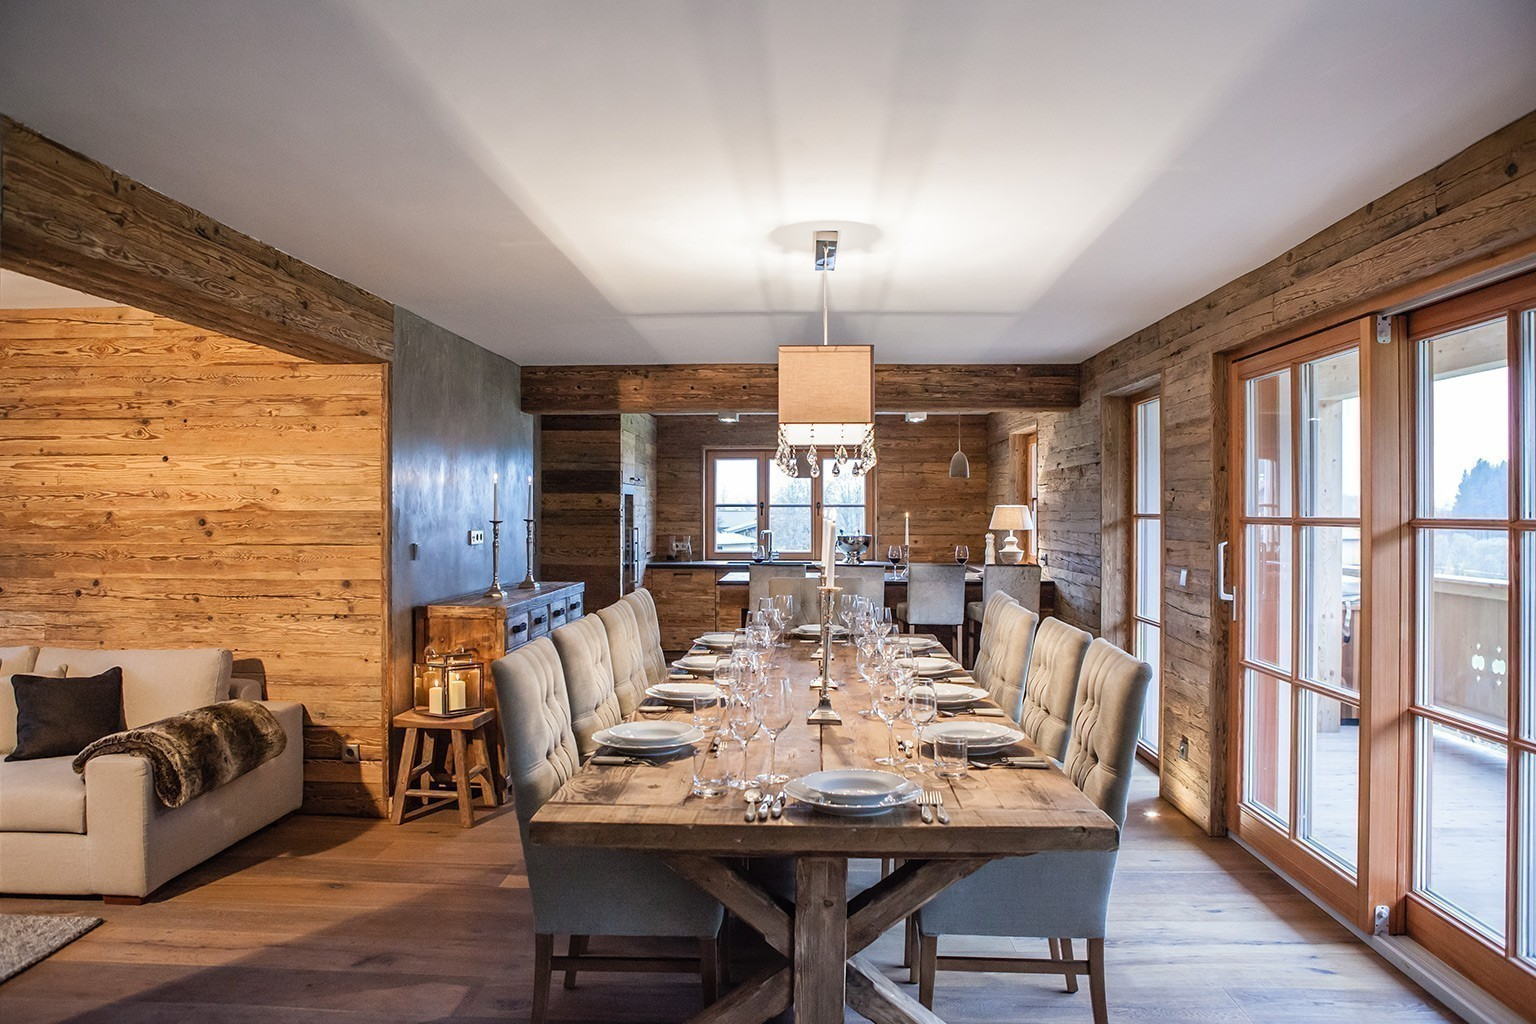 Kitz boutique chalet luxushotel bei designreisen for Design boutique hotel tirol